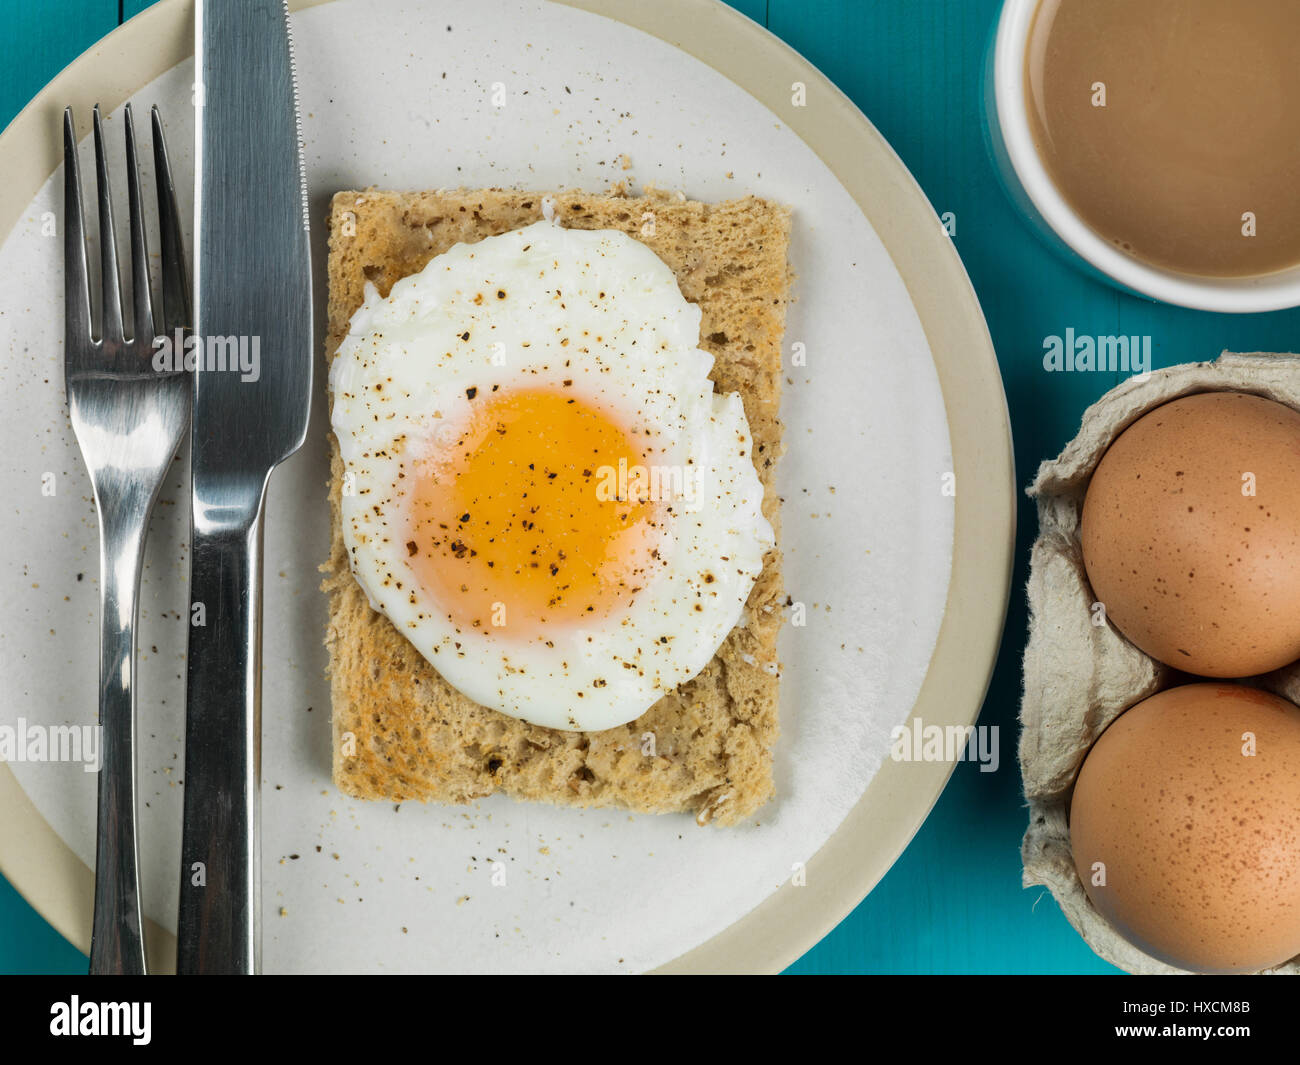 Poached Egg on Toasted Bread Breakfast Food With a Mug of Tea or Coffee and Two Raw Eggs - Stock Image